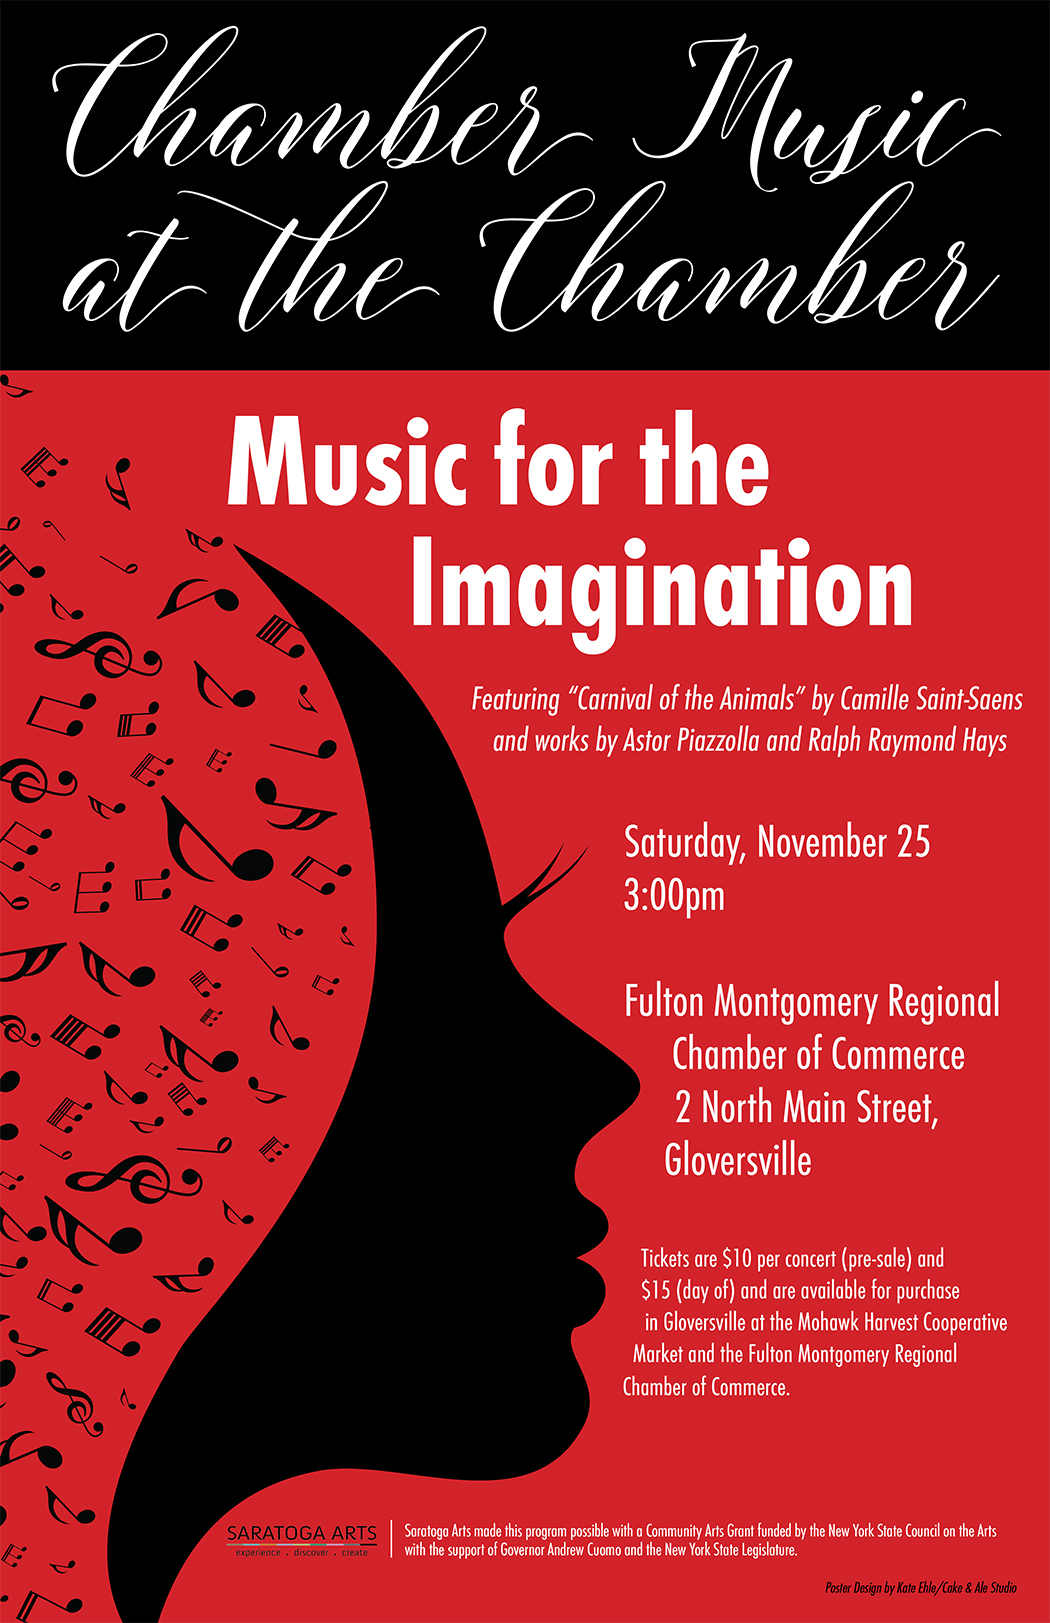 Chamber Music at the Chamber Music for the Imagination copy.jpg